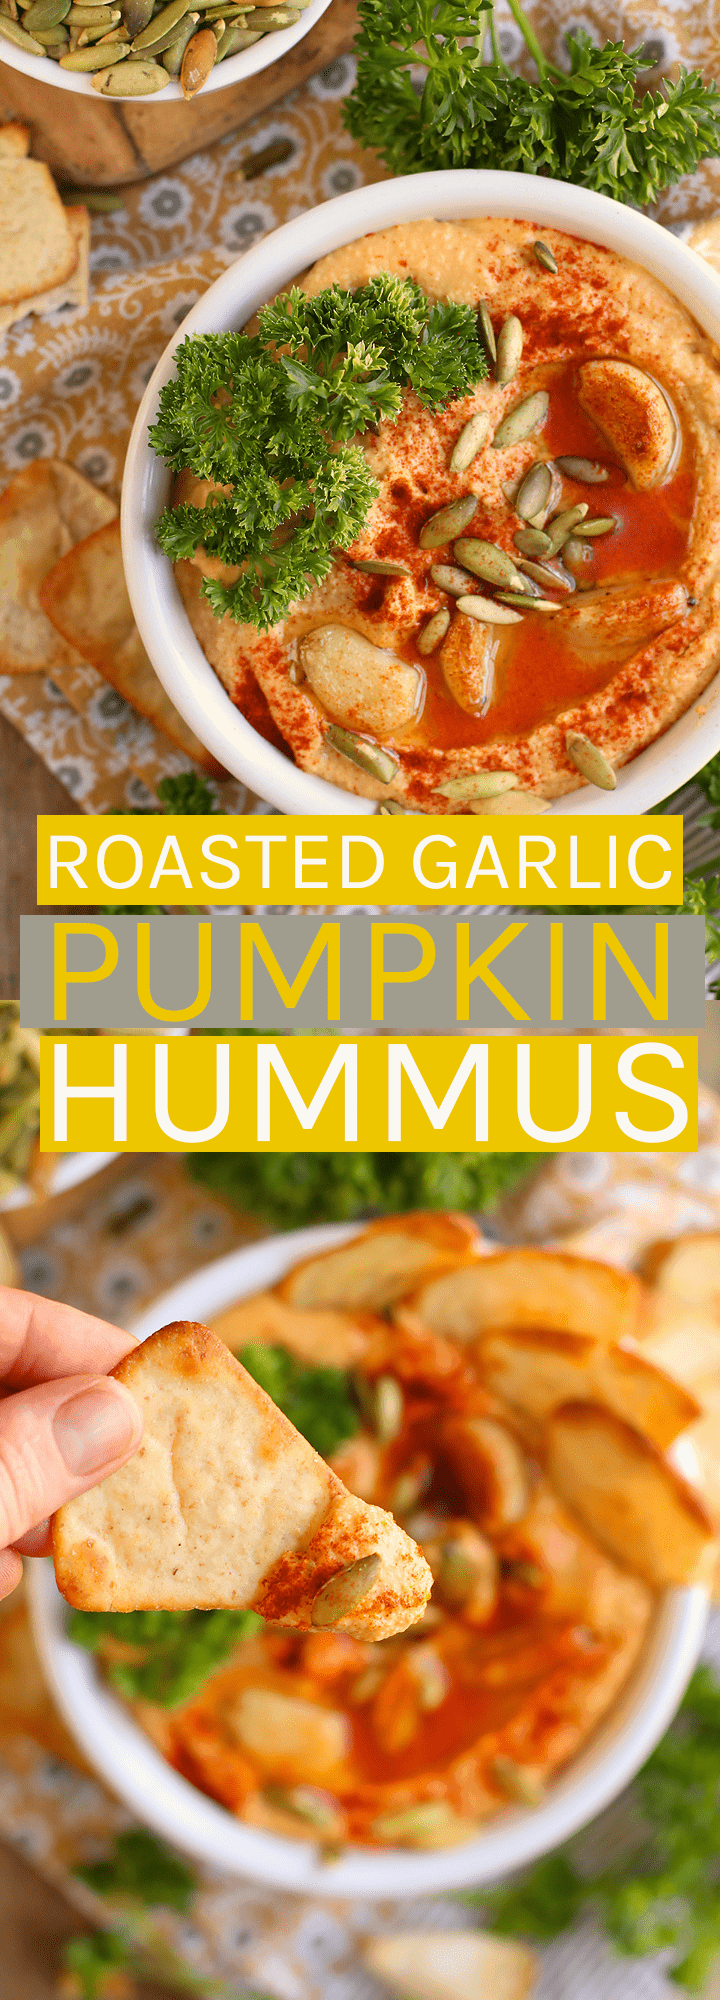 A classic dish with a seasonal twist, this Roasted Garlic Pumpkin Hummus is the perfect snack for all your fall gatherings.